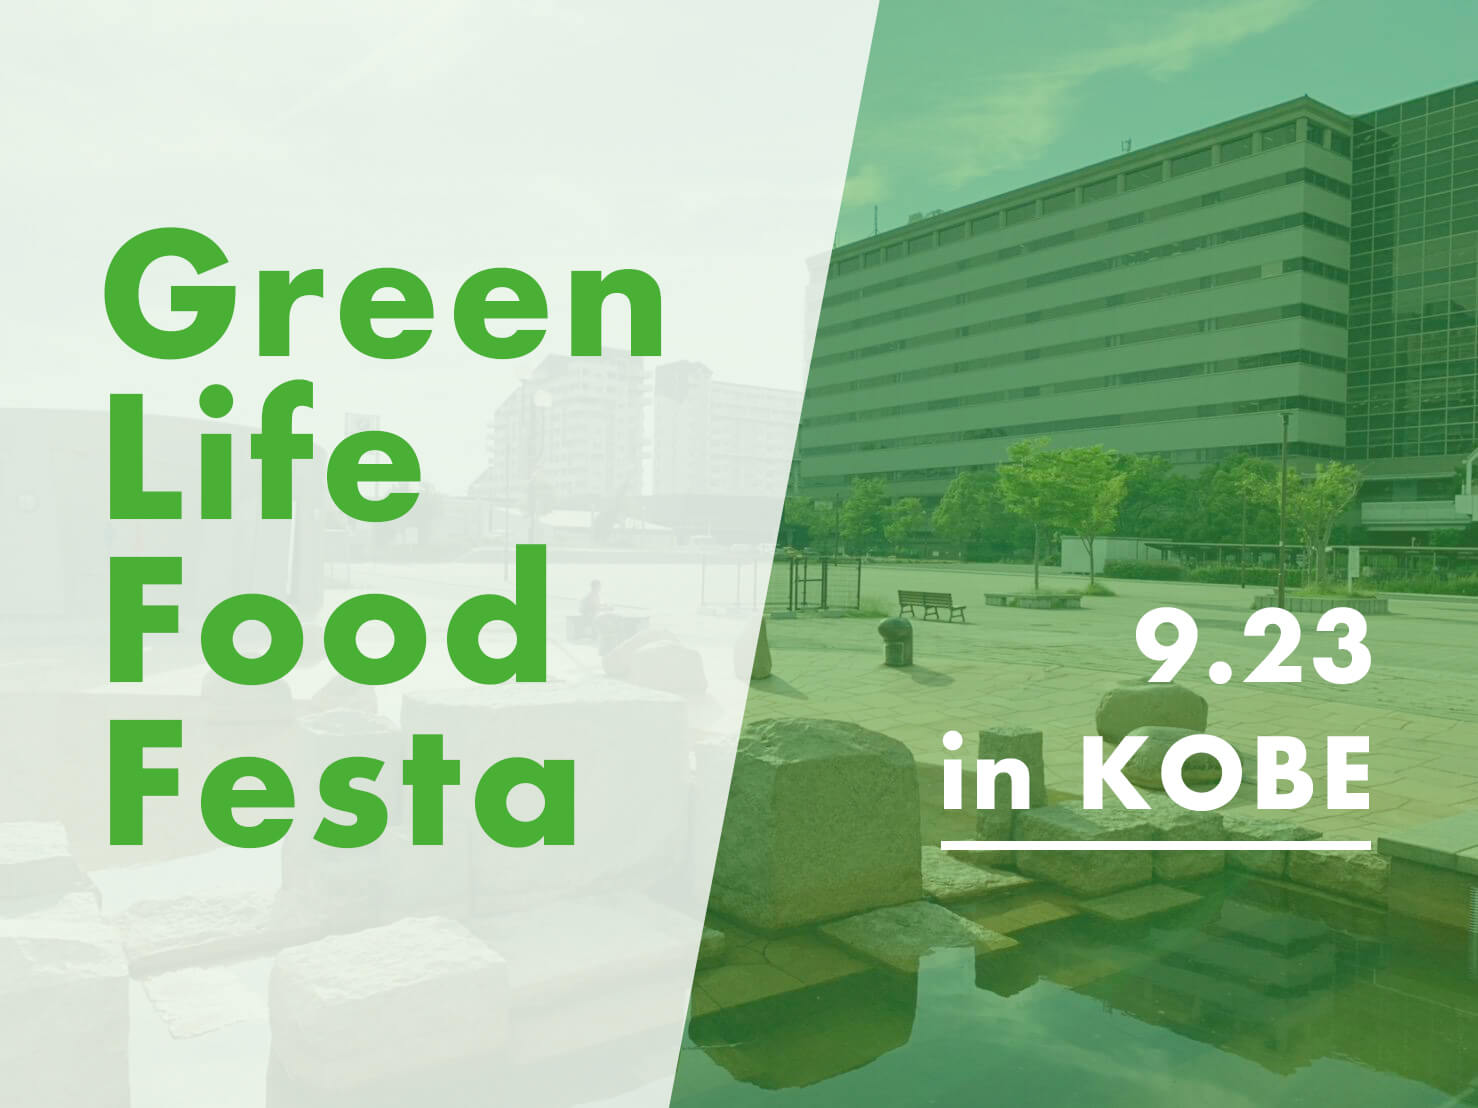 Green Life Food Festa in KOBE